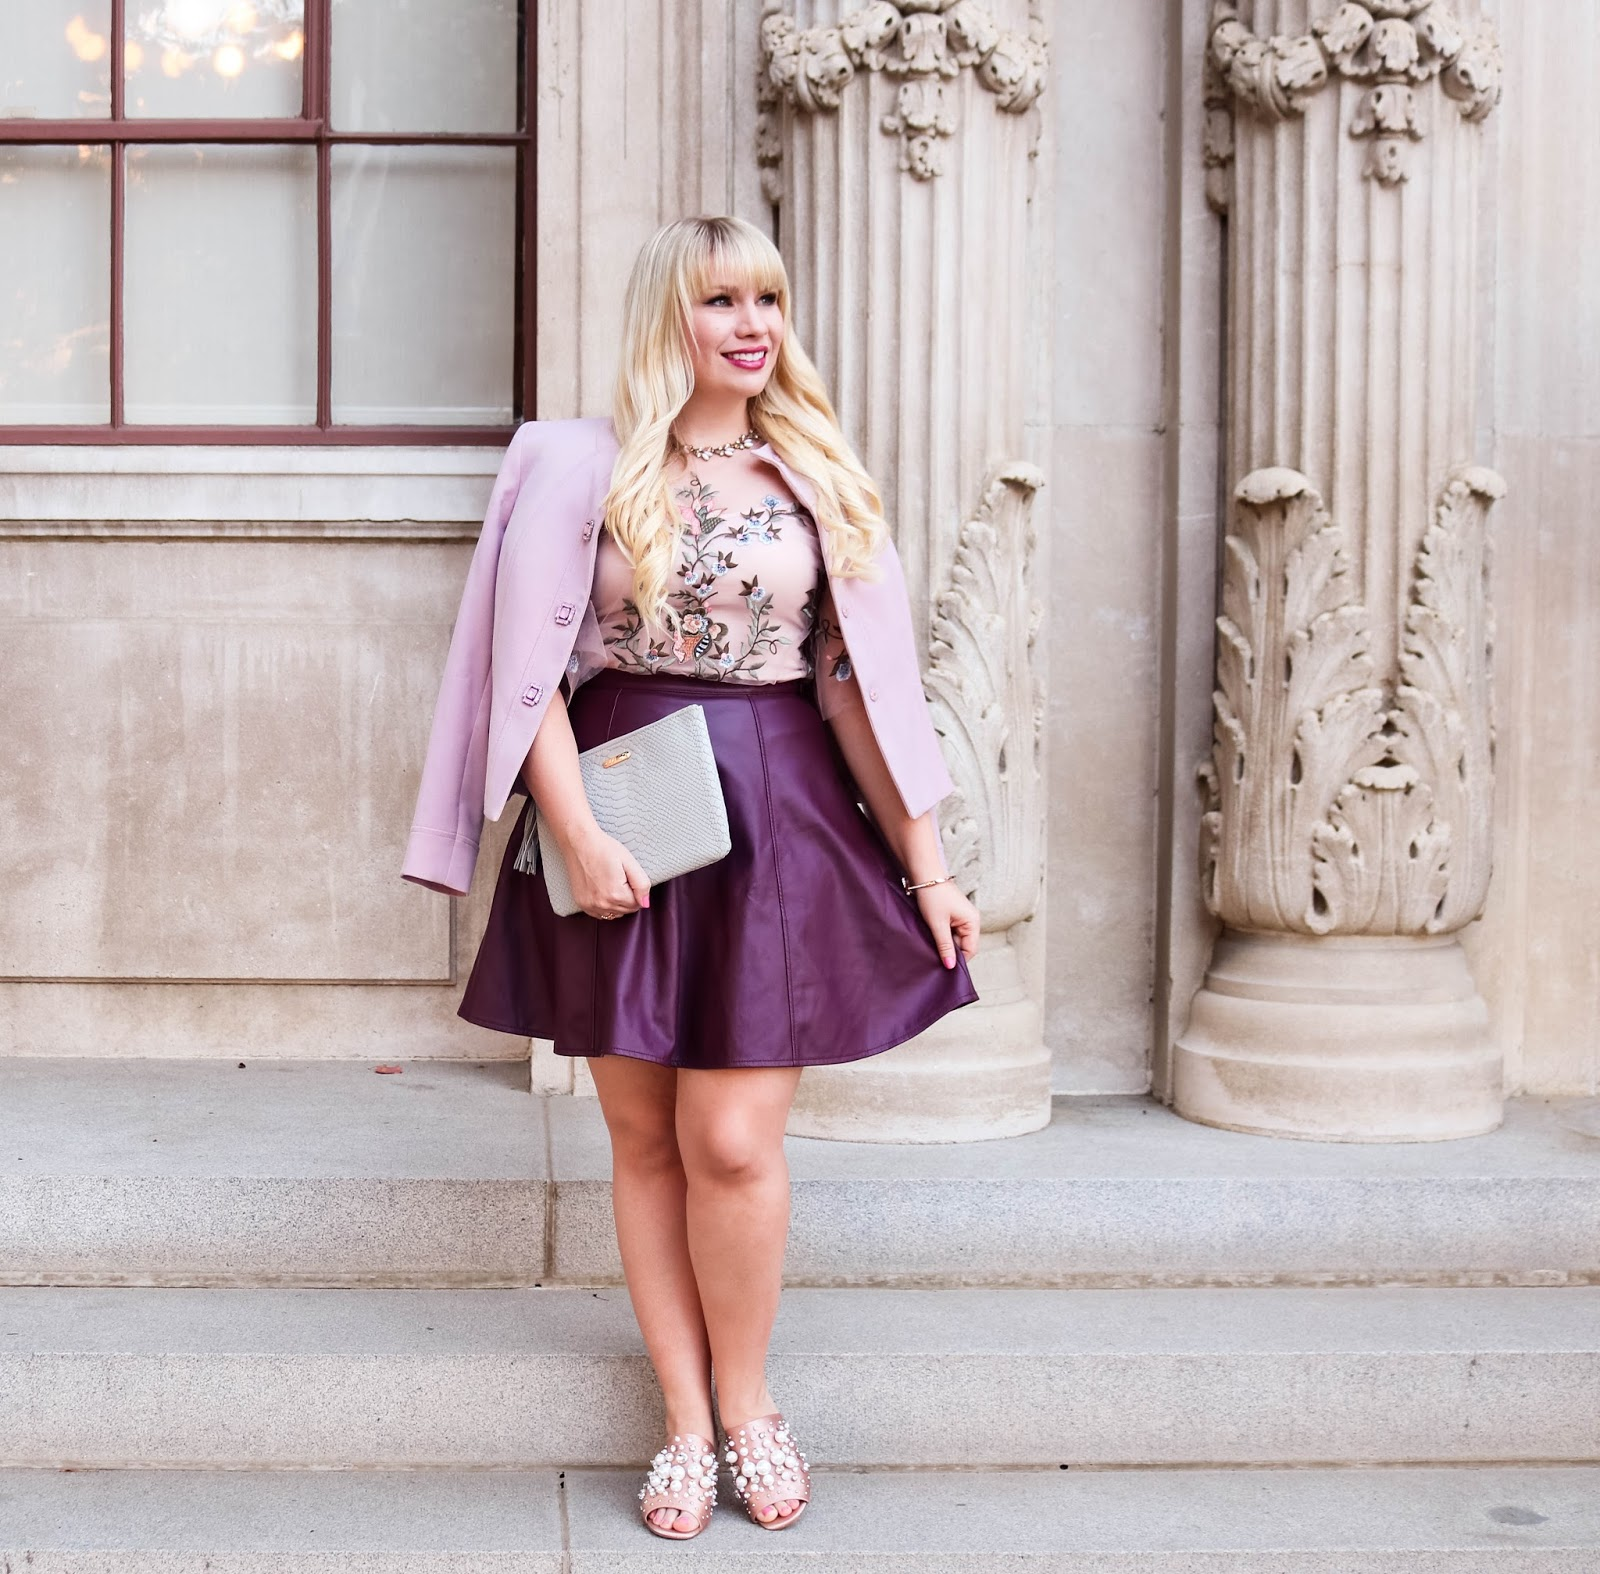 0dcfa14a754 Today I m styling my favorite color combo for fall…plum and blush  3 Get my  outfit details below!